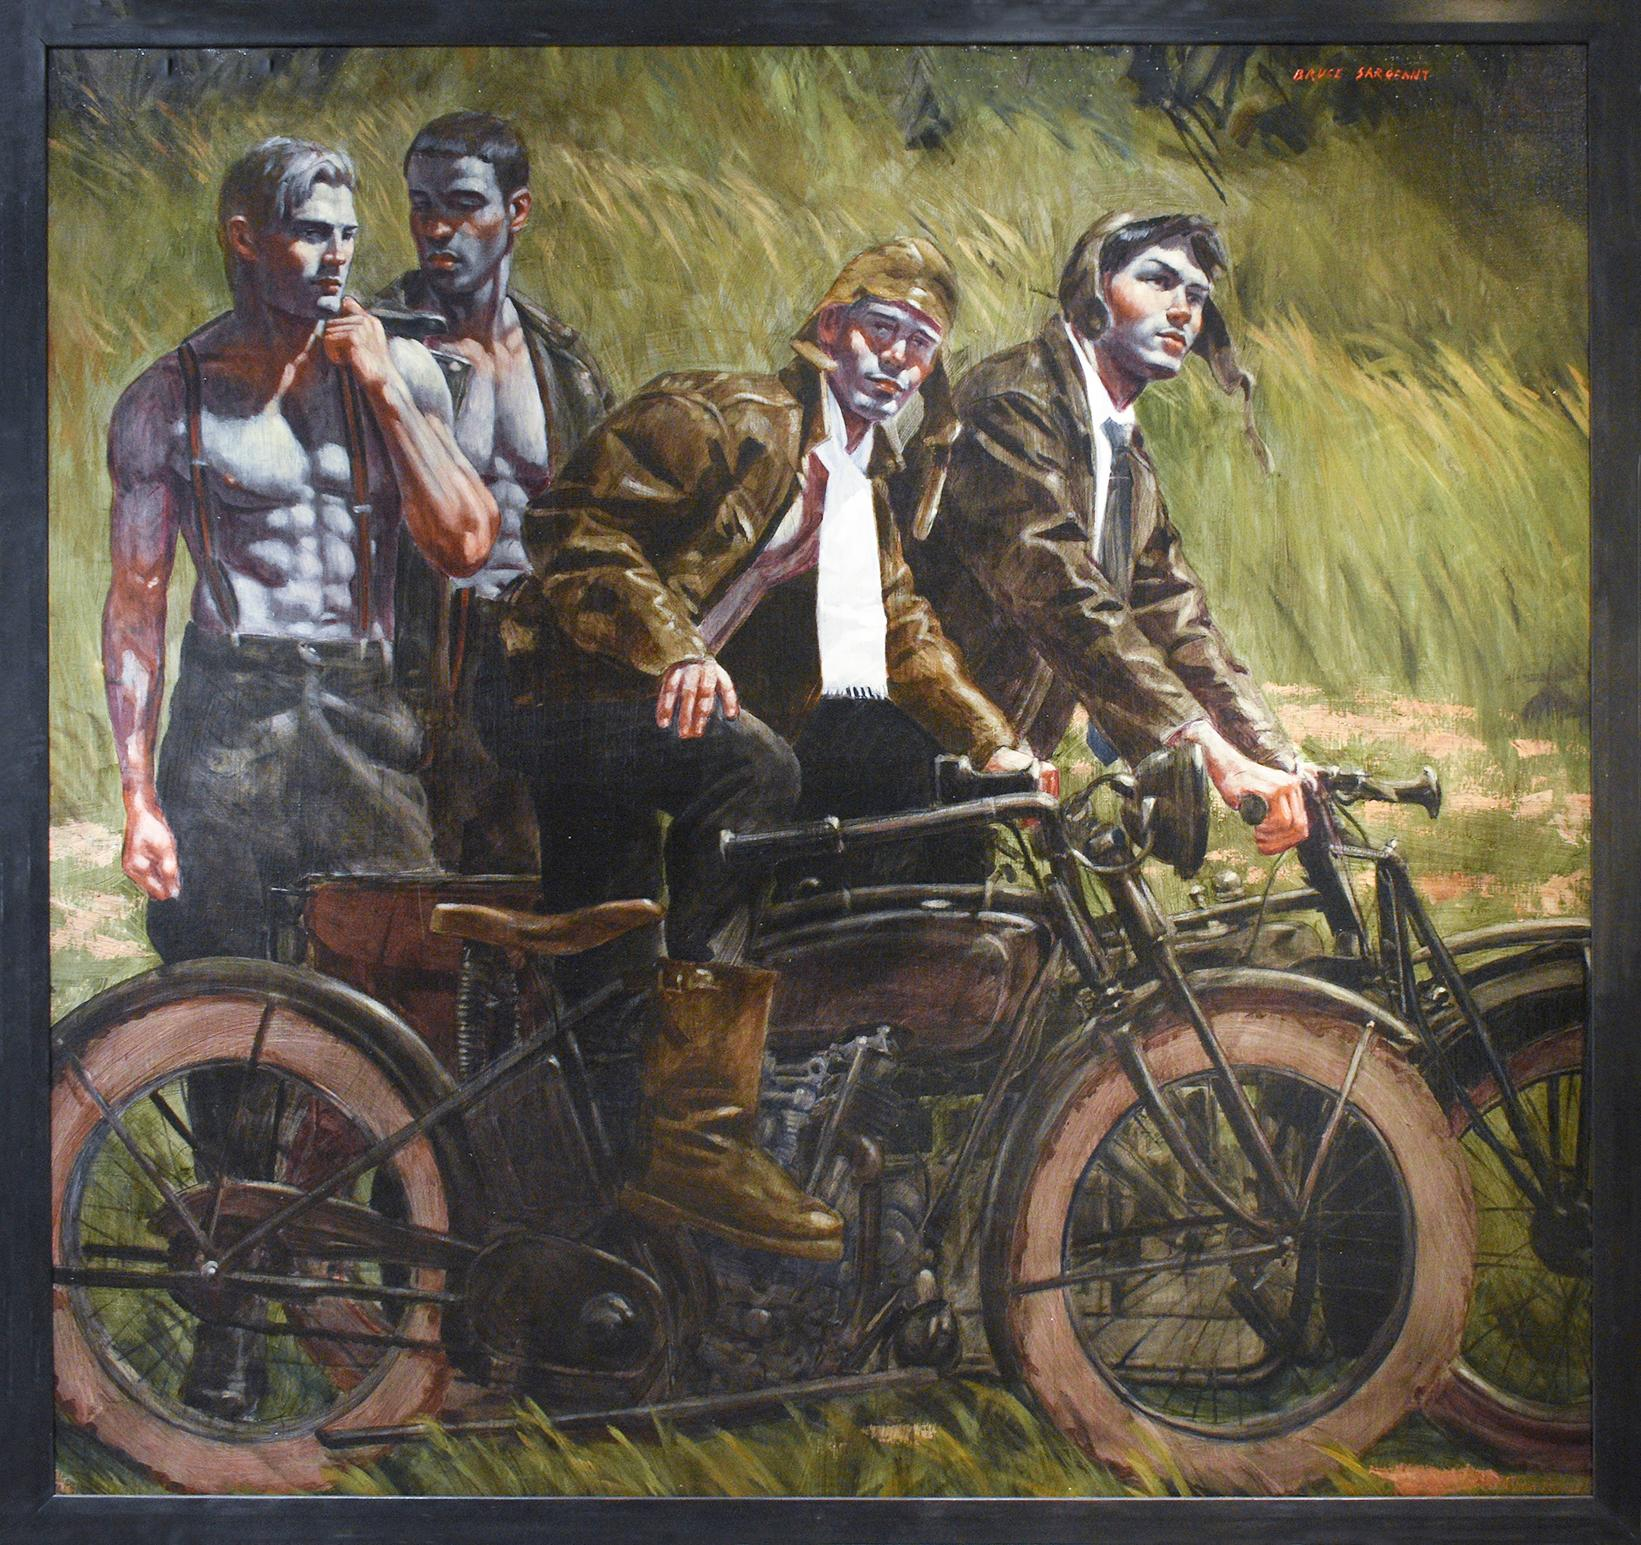 Men & Motorcycles, Mark Beard: Academic Figurative Painting of Four Male Models